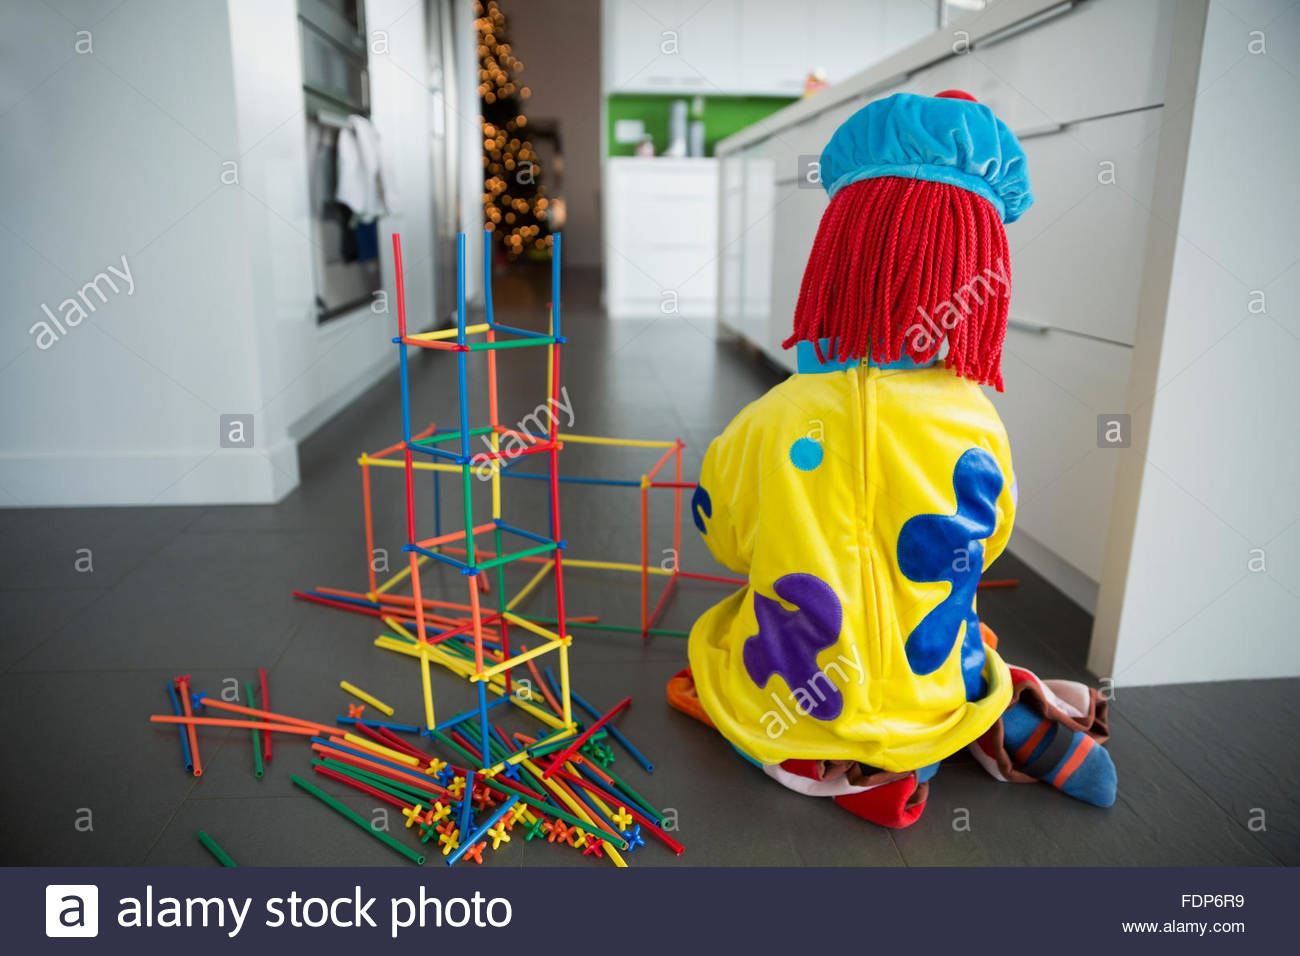 Boy in clown costume playing with connector sticks - Stock Image